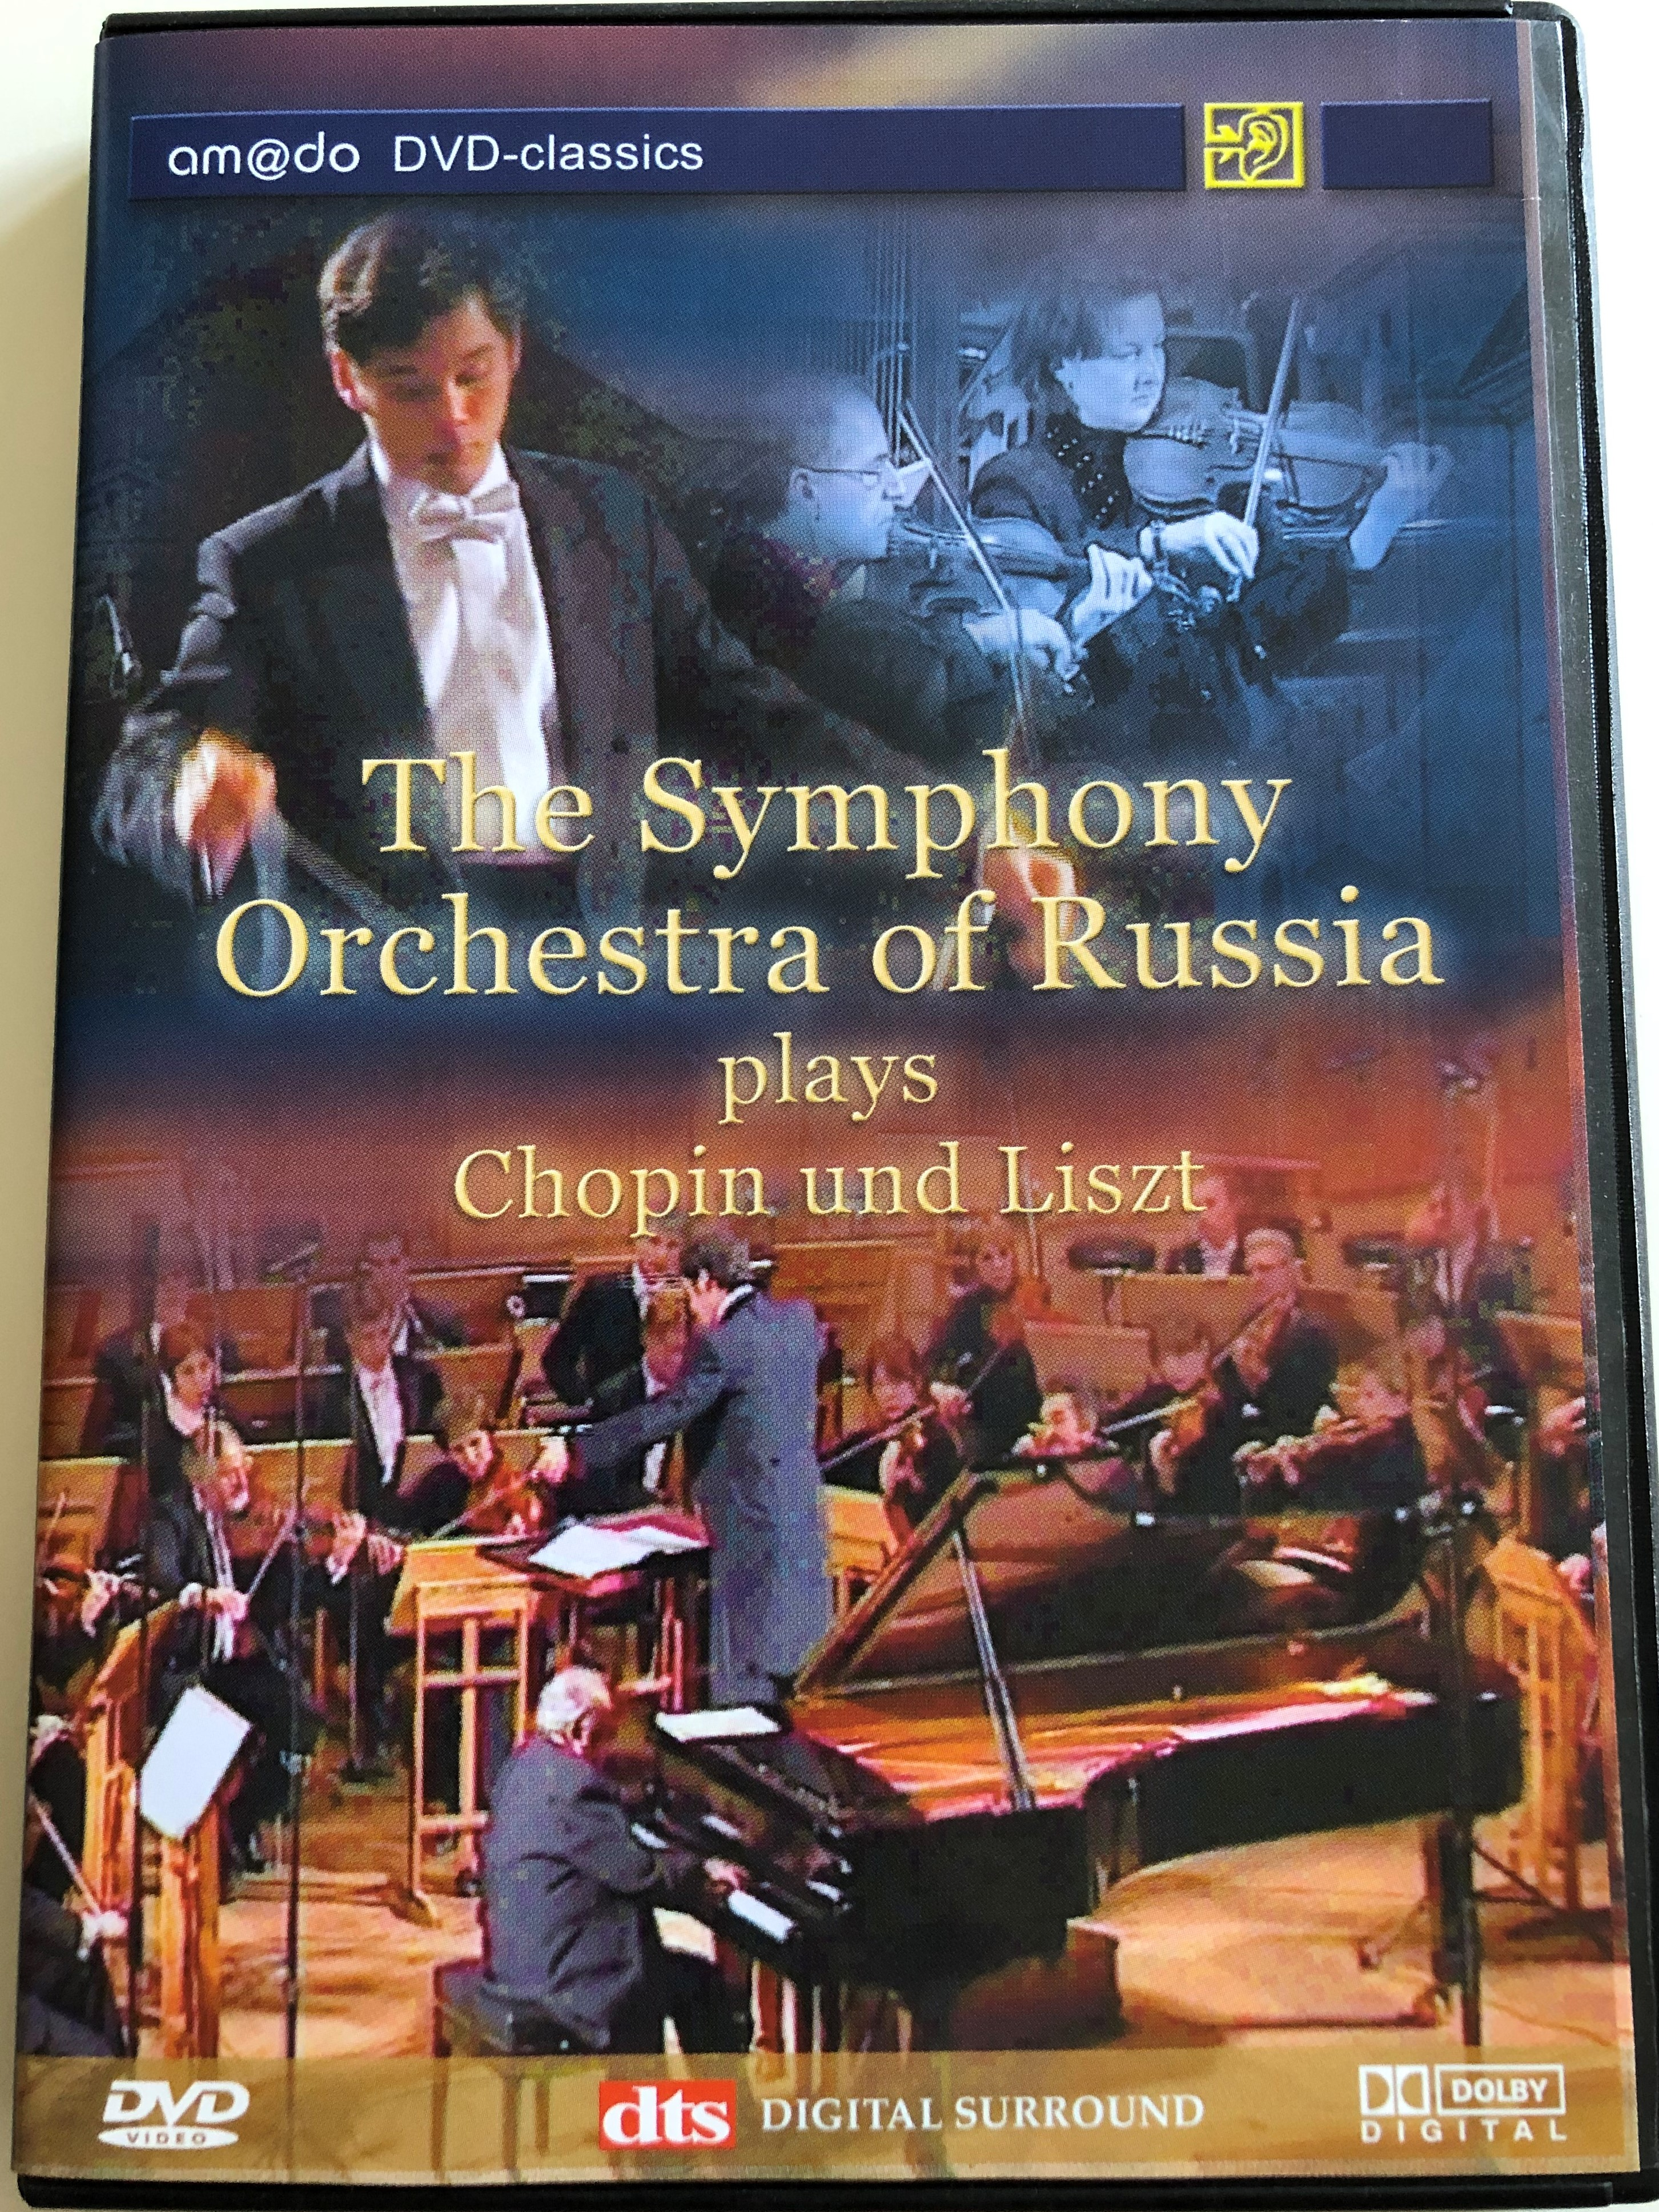 the-symphony-orchestra-of-russia-plays-chopin-und-liszt-dvd-conducted-by-tugan-sohiev-naum-shtarkman-piano-amado-classics-1-.jpg